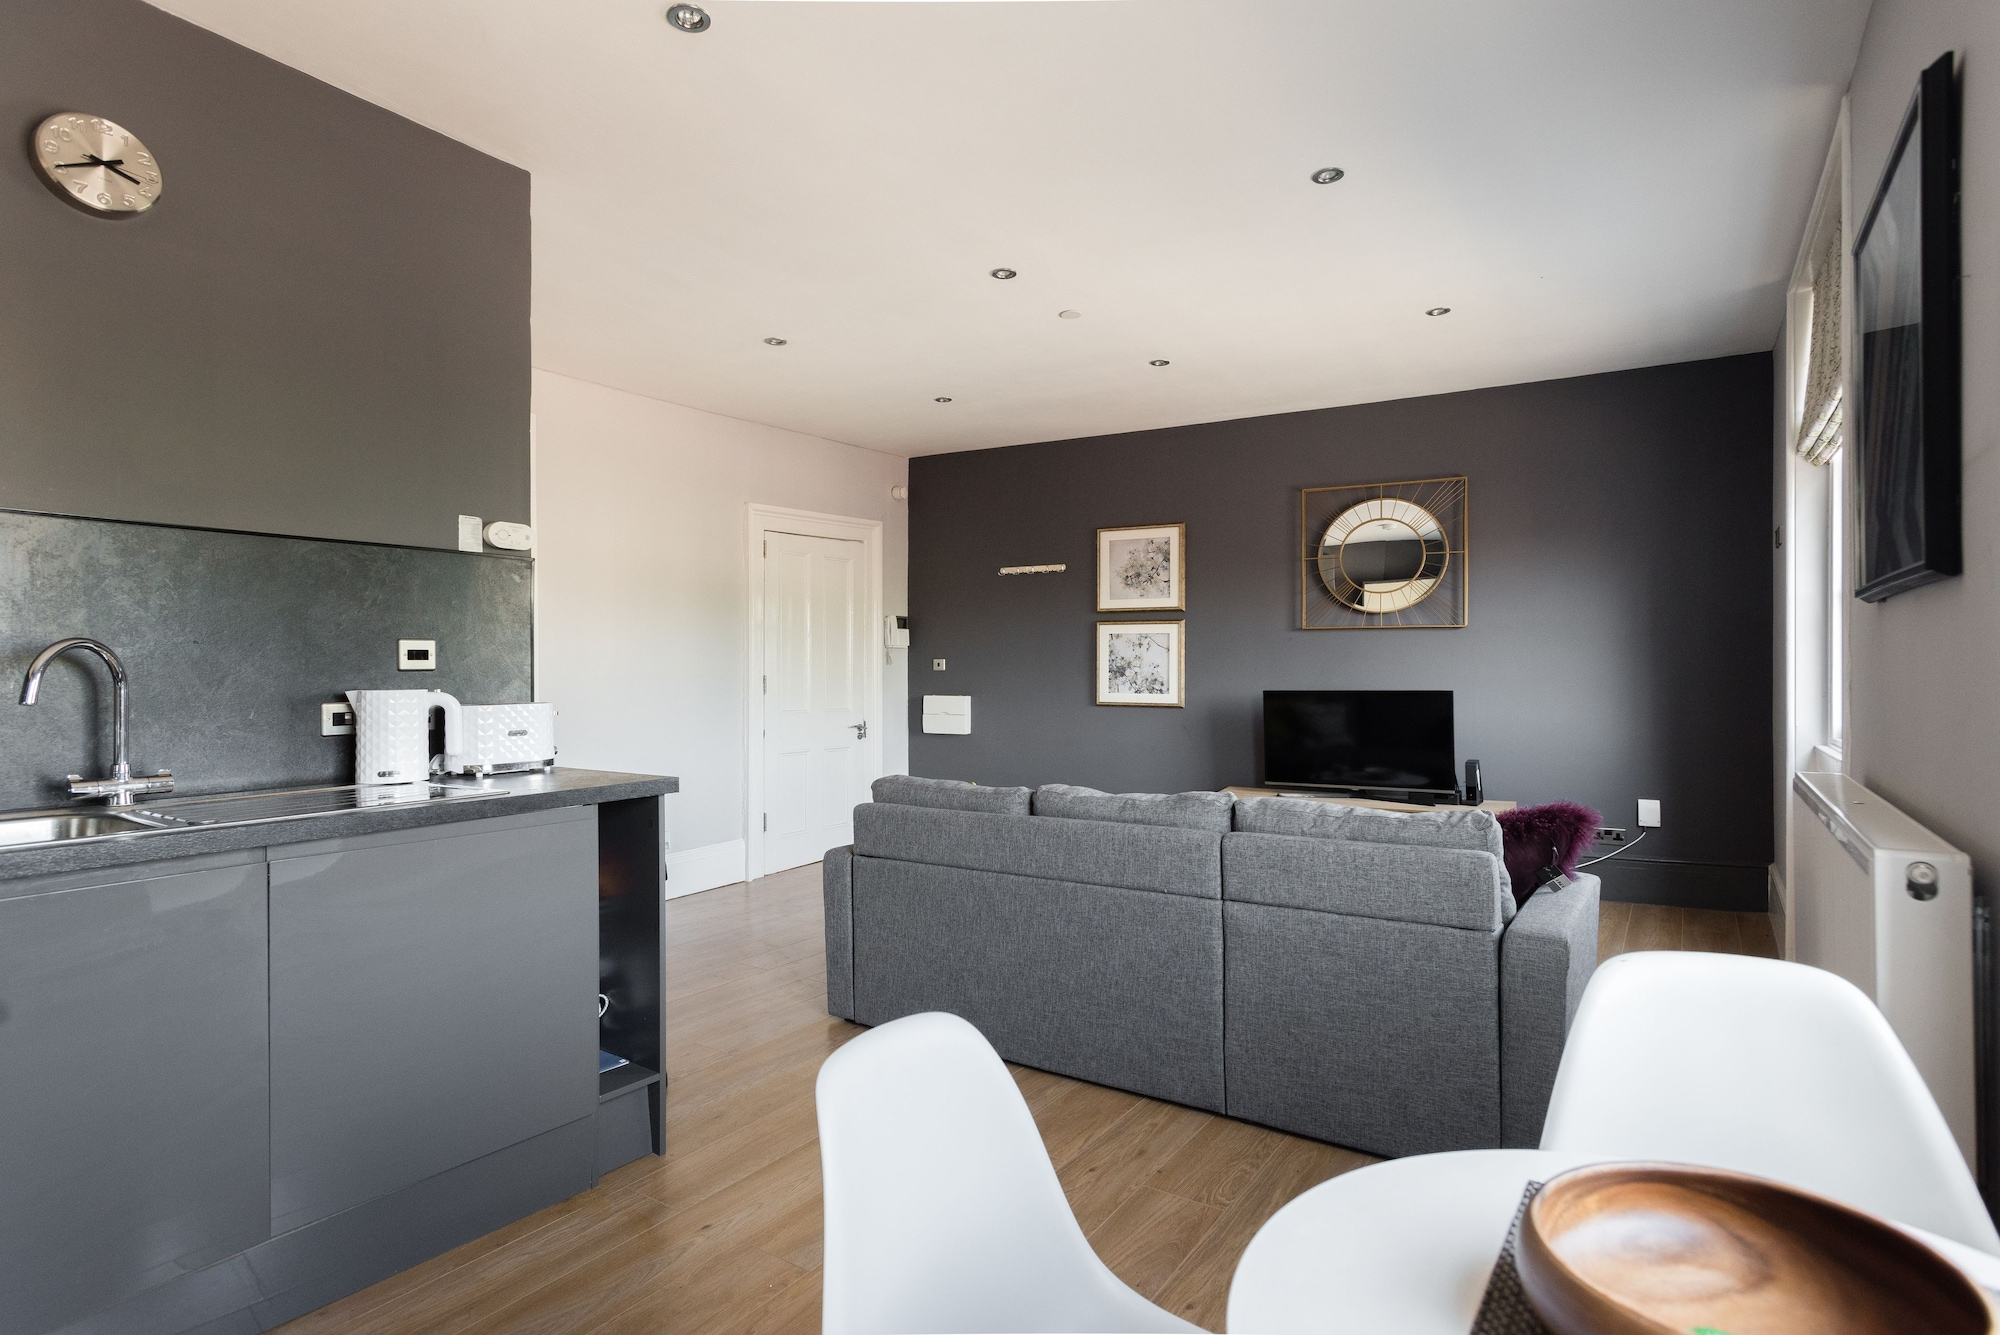 The Riverside Retreat - Modern & Stylish 1bdr Apartment in the Old City, Bristol